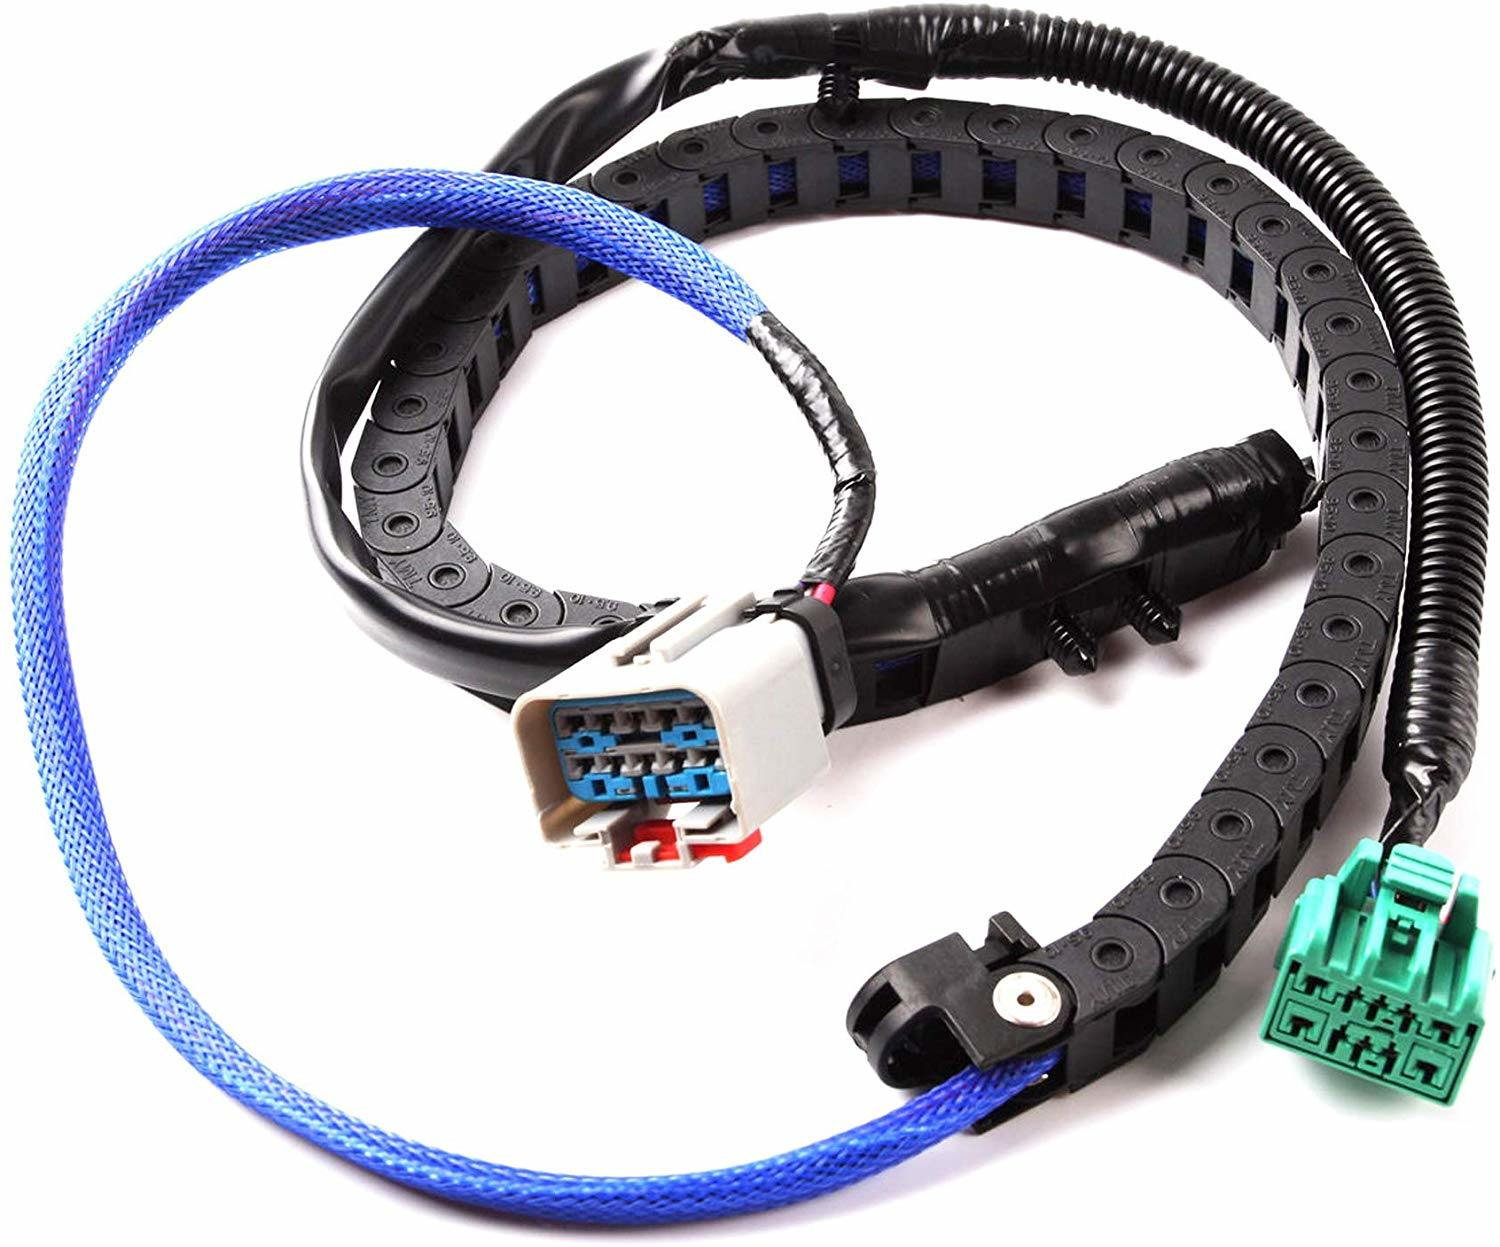 China Chrysler Rear Right Driver Side Power Sliding Door Wiring Harness -  China Wiring Harness, Door Wiring HarnessHuizhou Wirestec Co., Ltd.